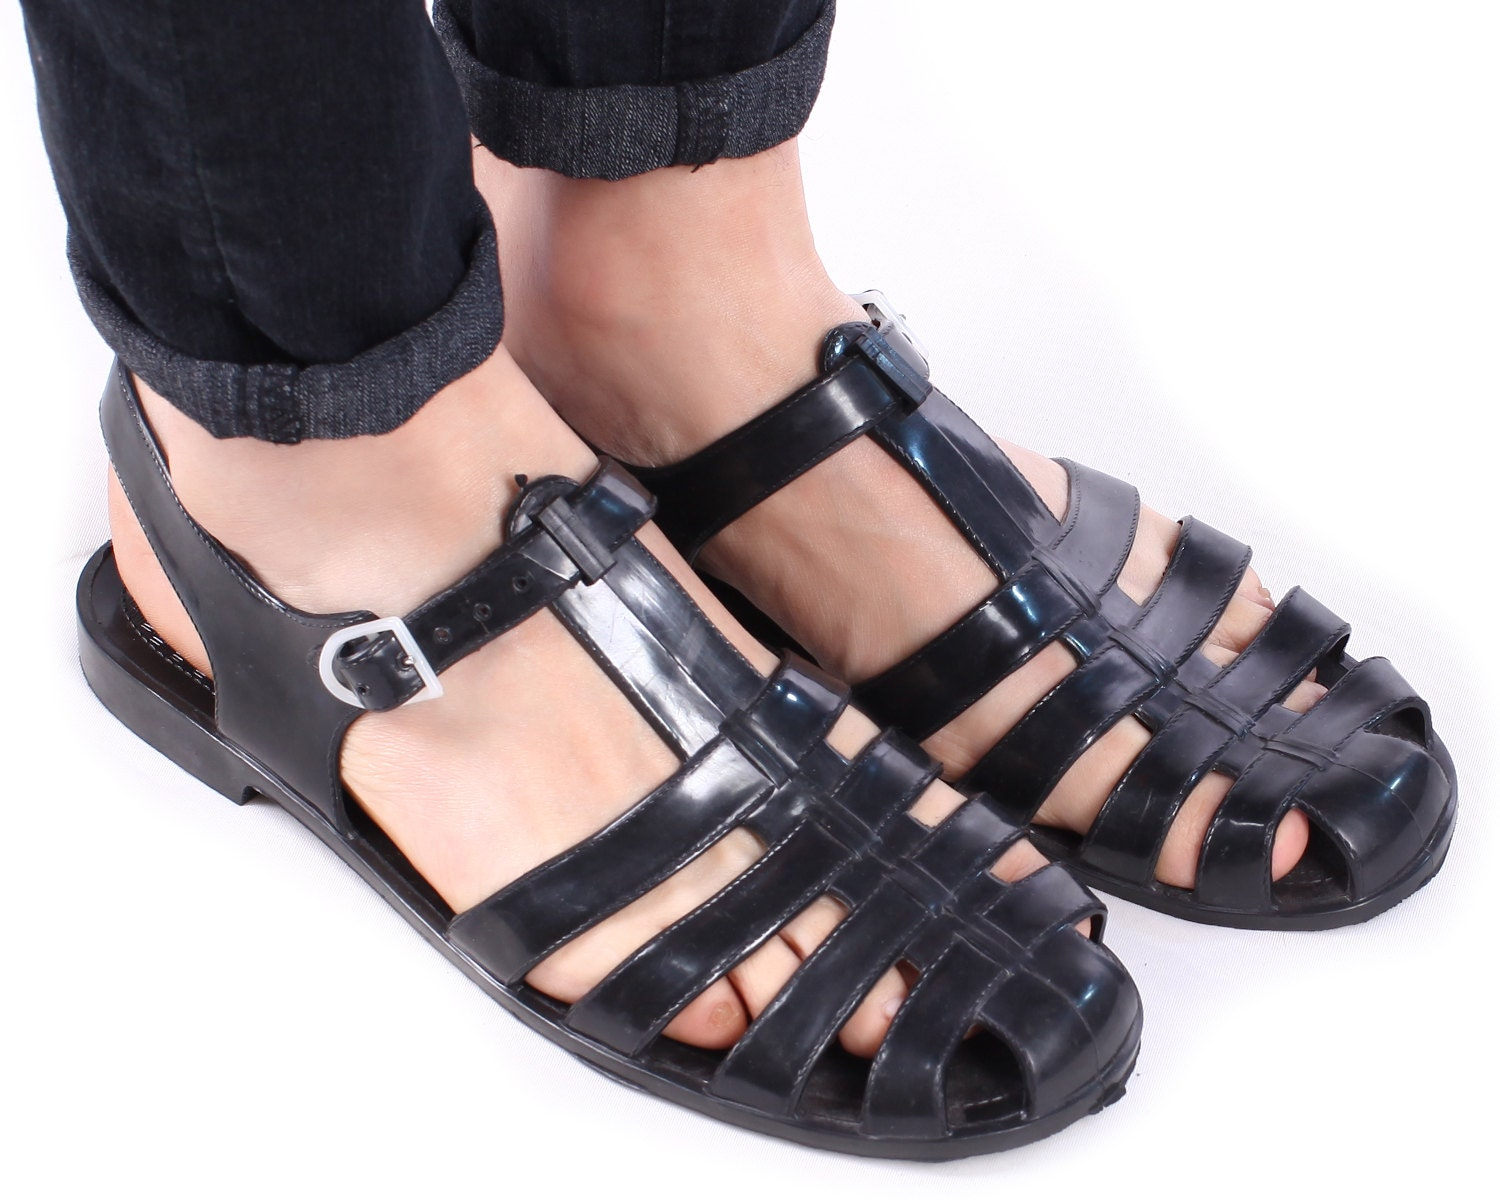 Online shopping for popular & hot Mens Jellies Sandals from Shoes, Men's Sandals, Slippers, Mother & Kids and more related Mens Jellies Sandals like Mens Jellies Sandals. Discover over of the best Selection Mens Jellies Sandals on deletzloads.tk Besides, various selected Mens Jellies Sandals brands are prepared for you to choose.